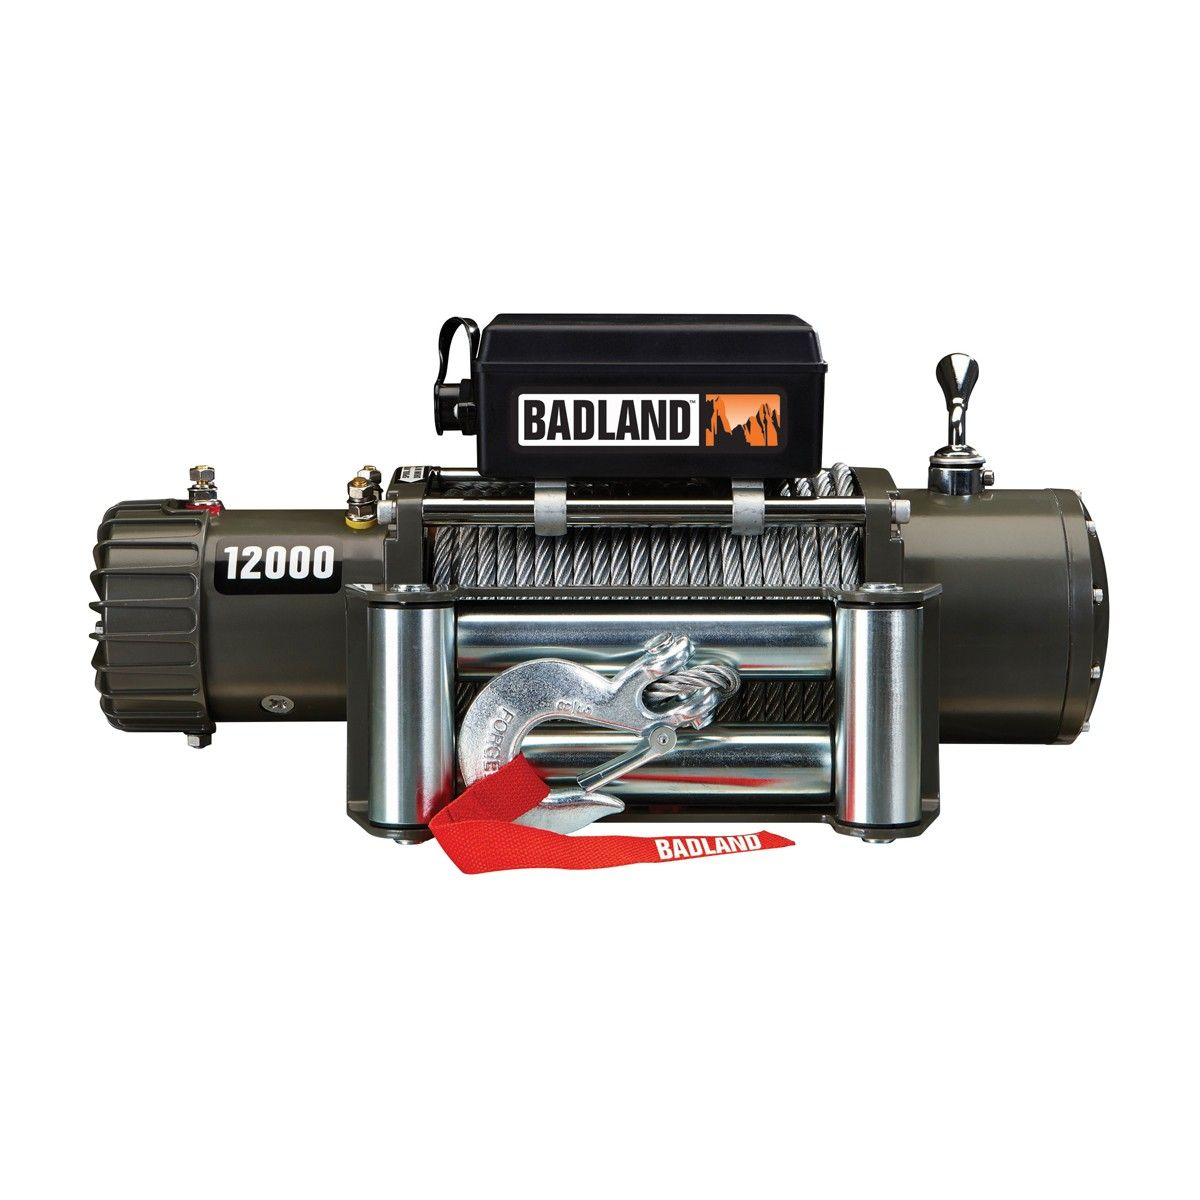 12000 lb off road vehicle electric winch with automatic load holding brake from harbor freight note there is a coupon that makes this item 299 in stores  [ 1200 x 1200 Pixel ]